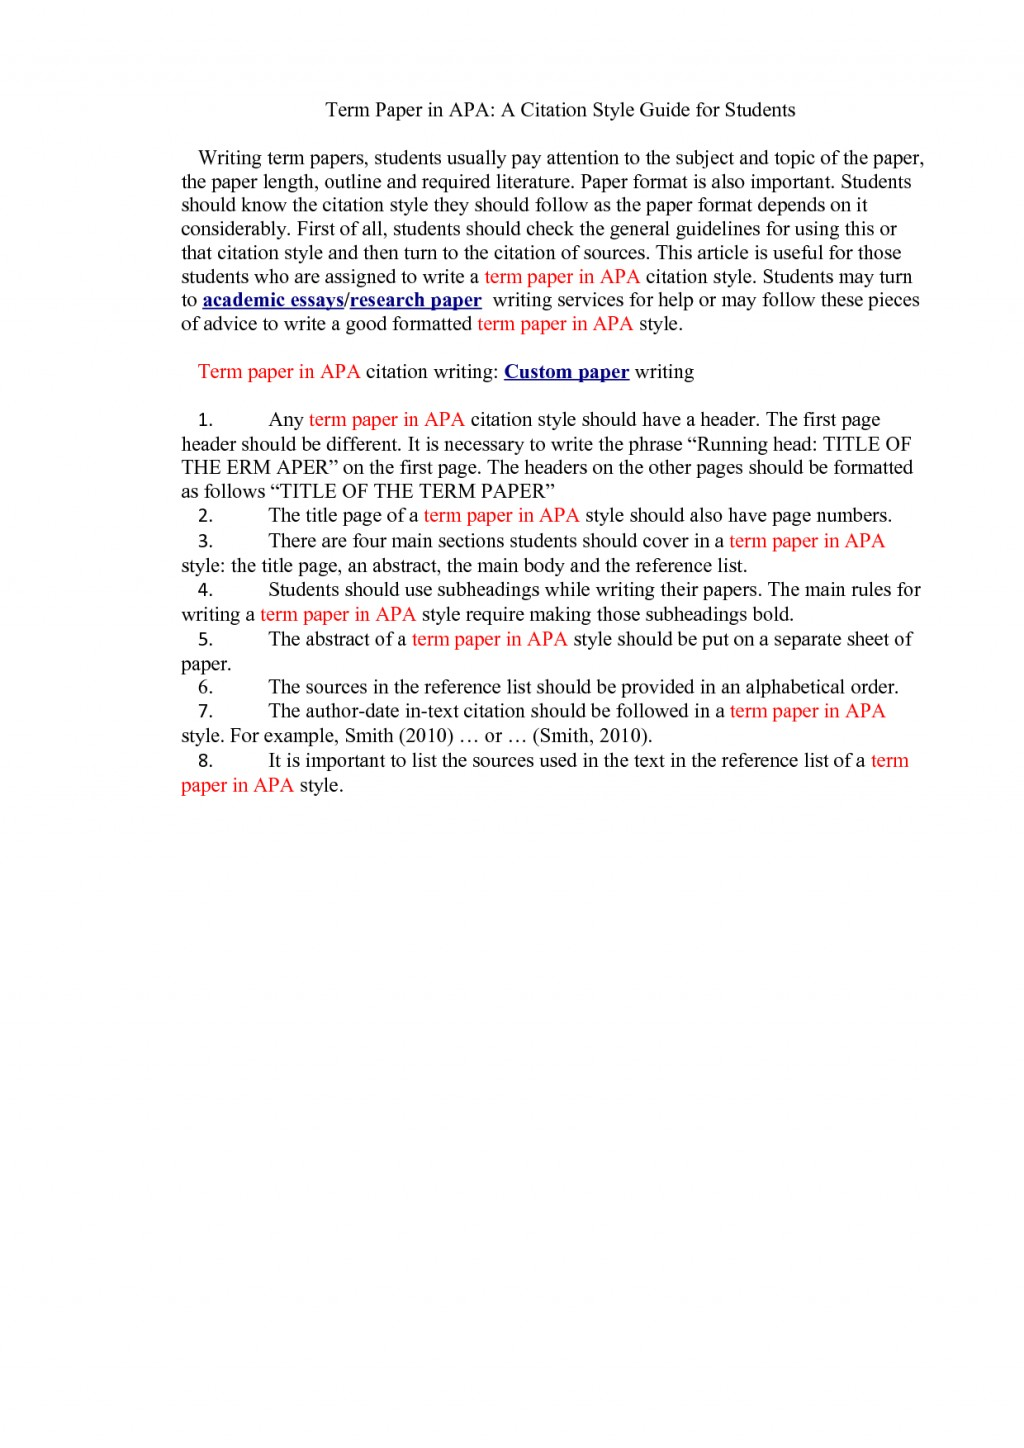 012 Essay Citation Mla Examples L Example How To Quote An Article Impressive In Reference Apa Title Online Large